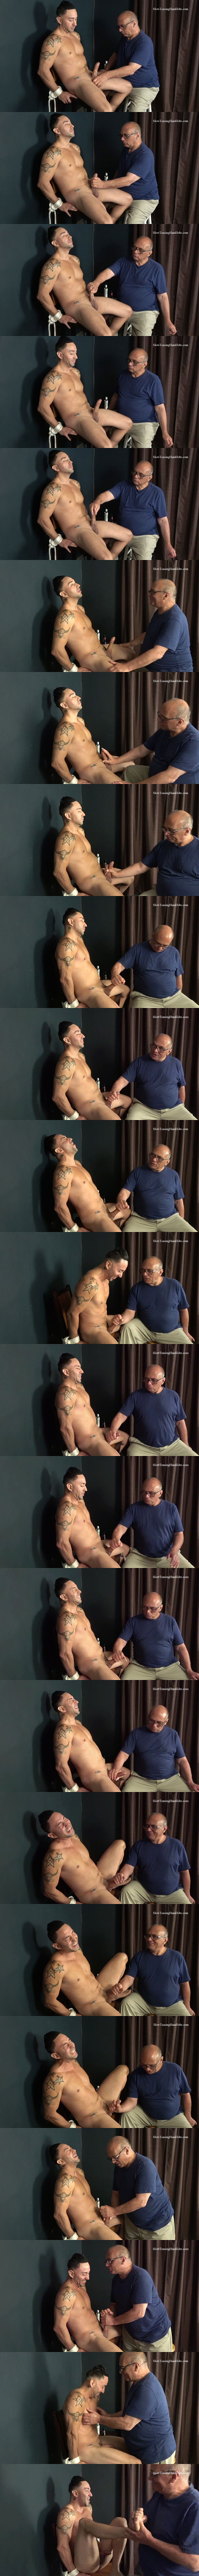 Slowteasinghandjobs - Tattooed straight beefcake DJ gets tied up before he gets slowly teased, serviced, edged, jerked off and tickled by master Rich 02